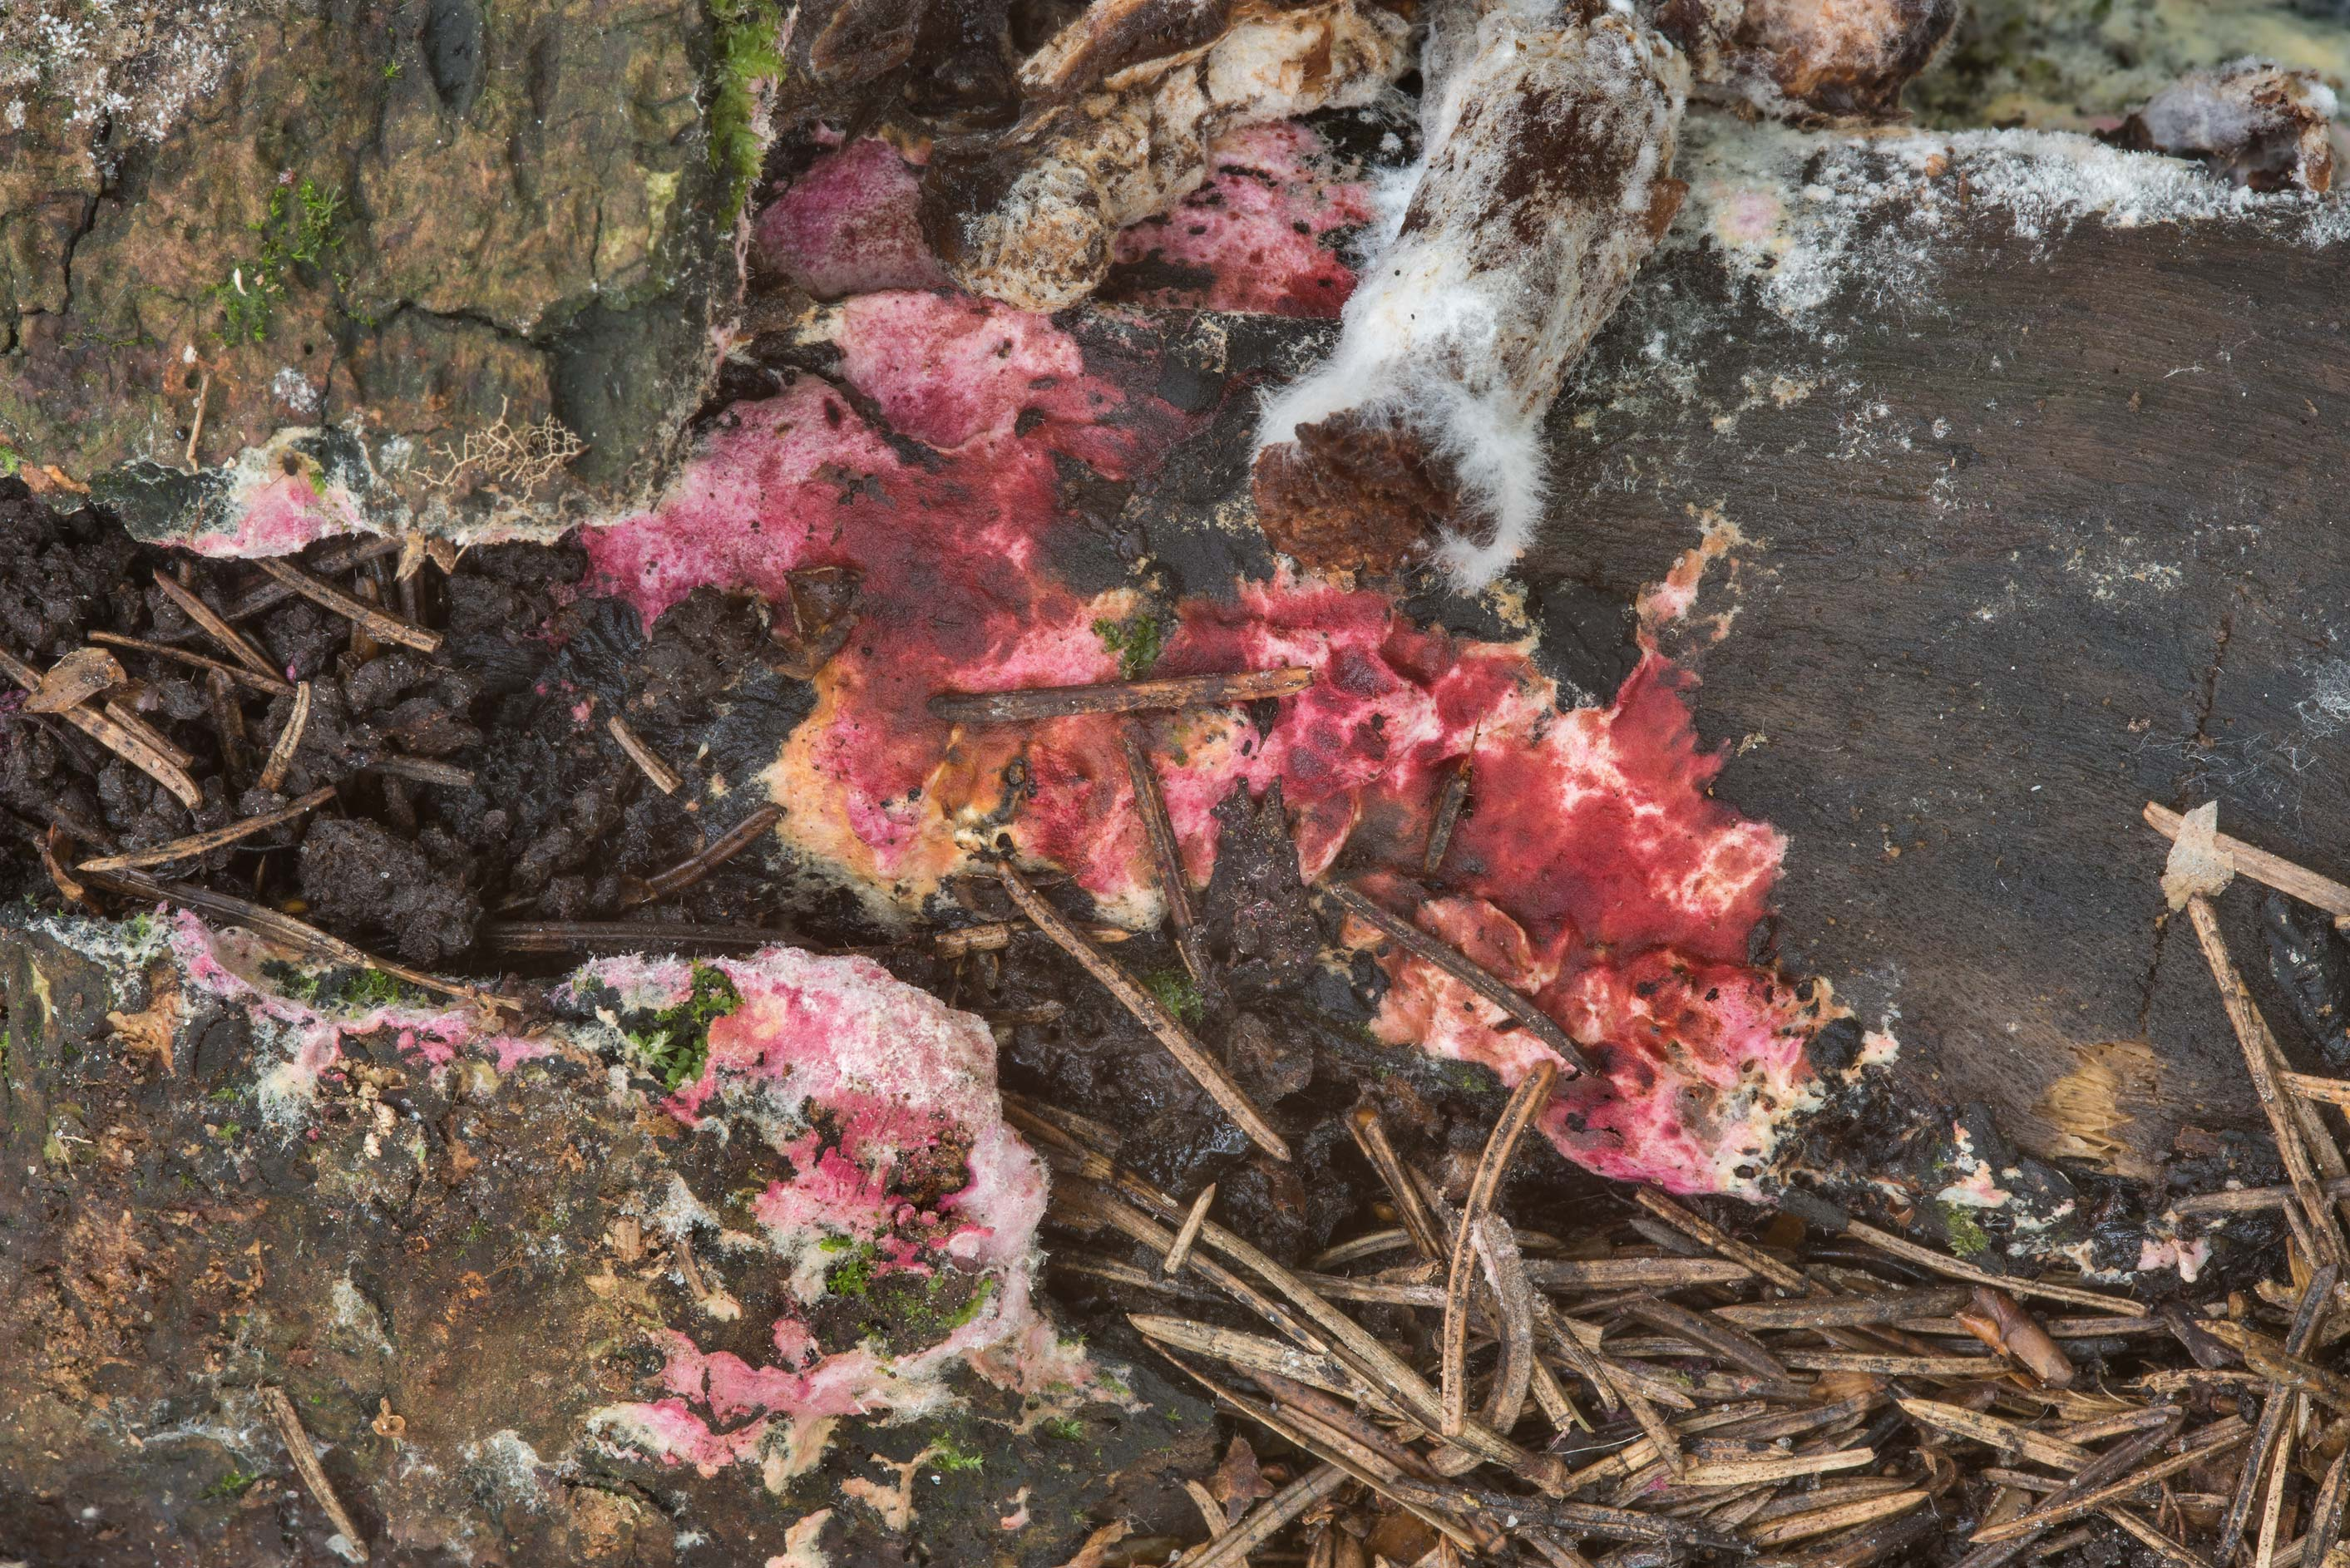 Some pinkish mold fungus on rotten wood in area...a suburb of St.Petersburg, Russia